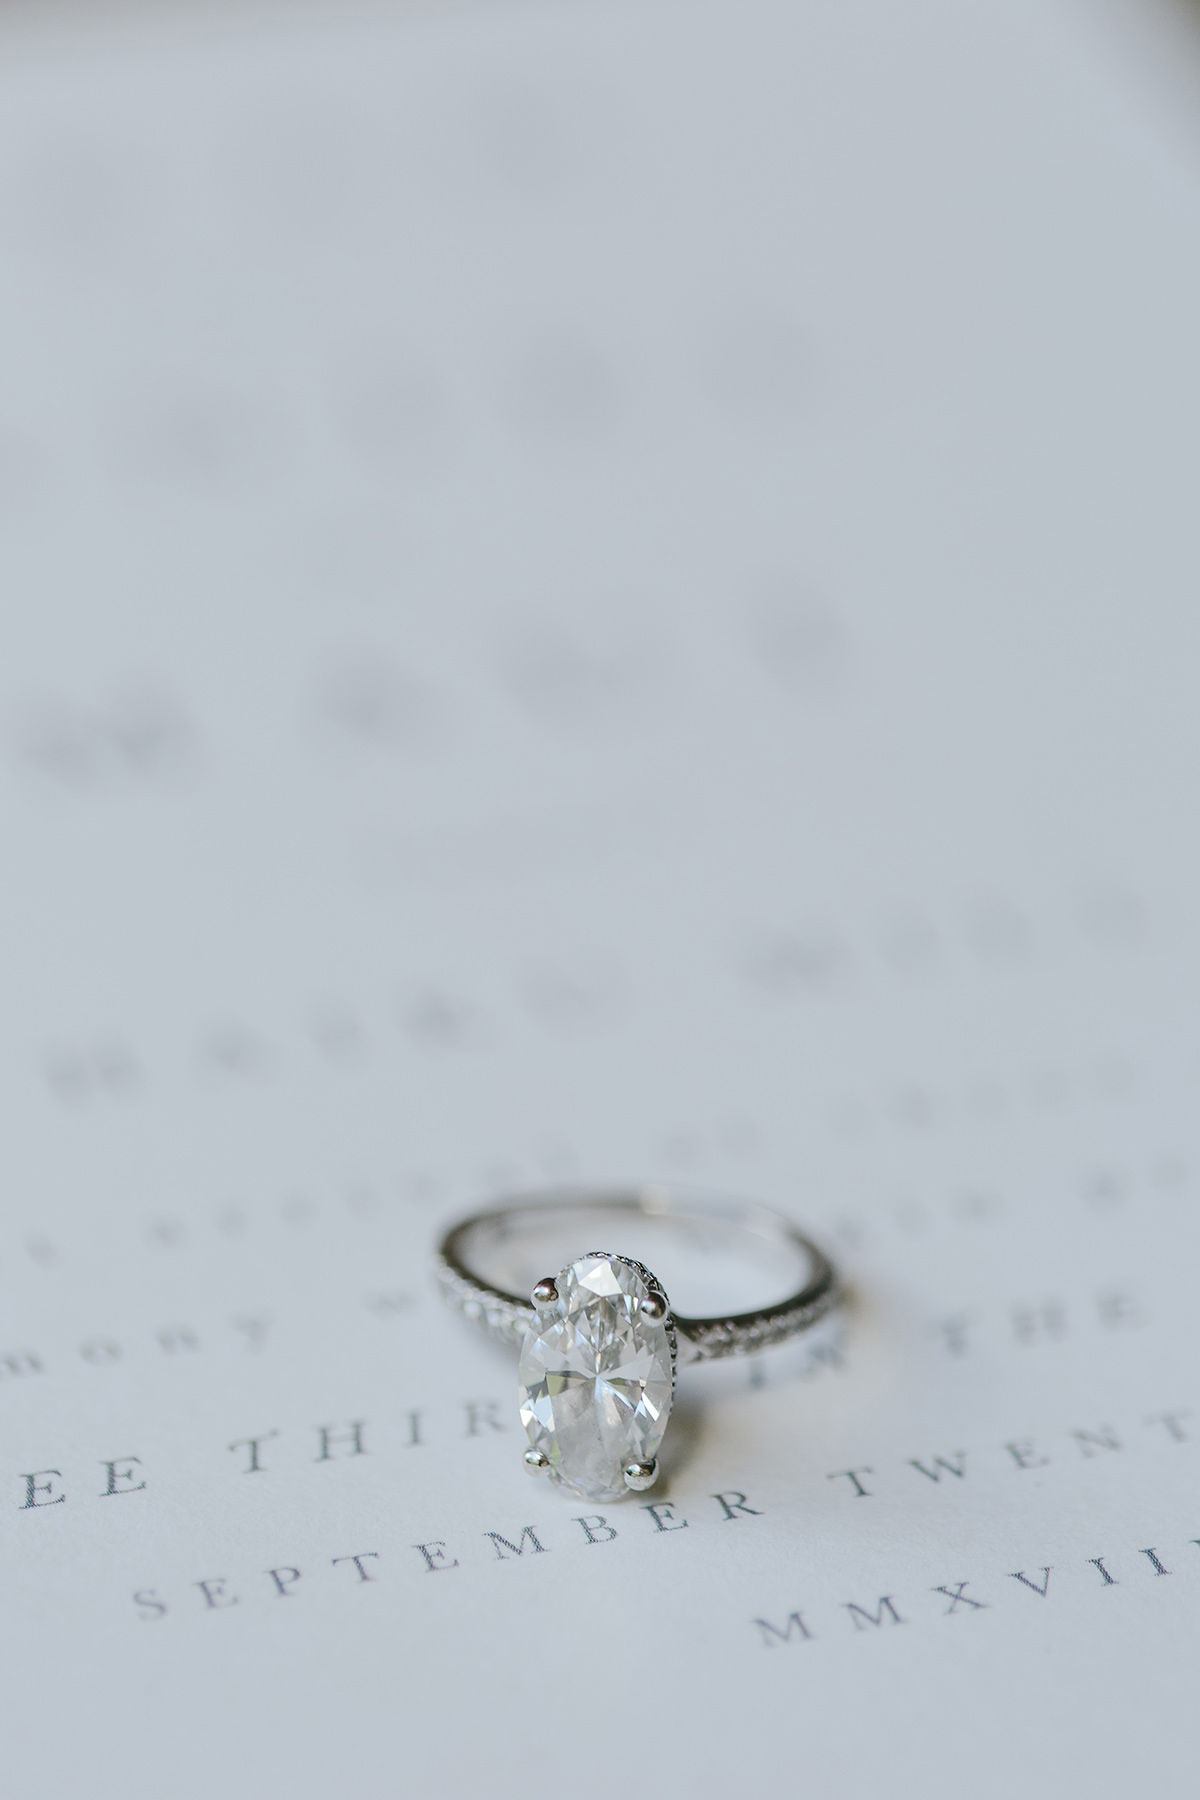 sarah daniel wedding diamond ring